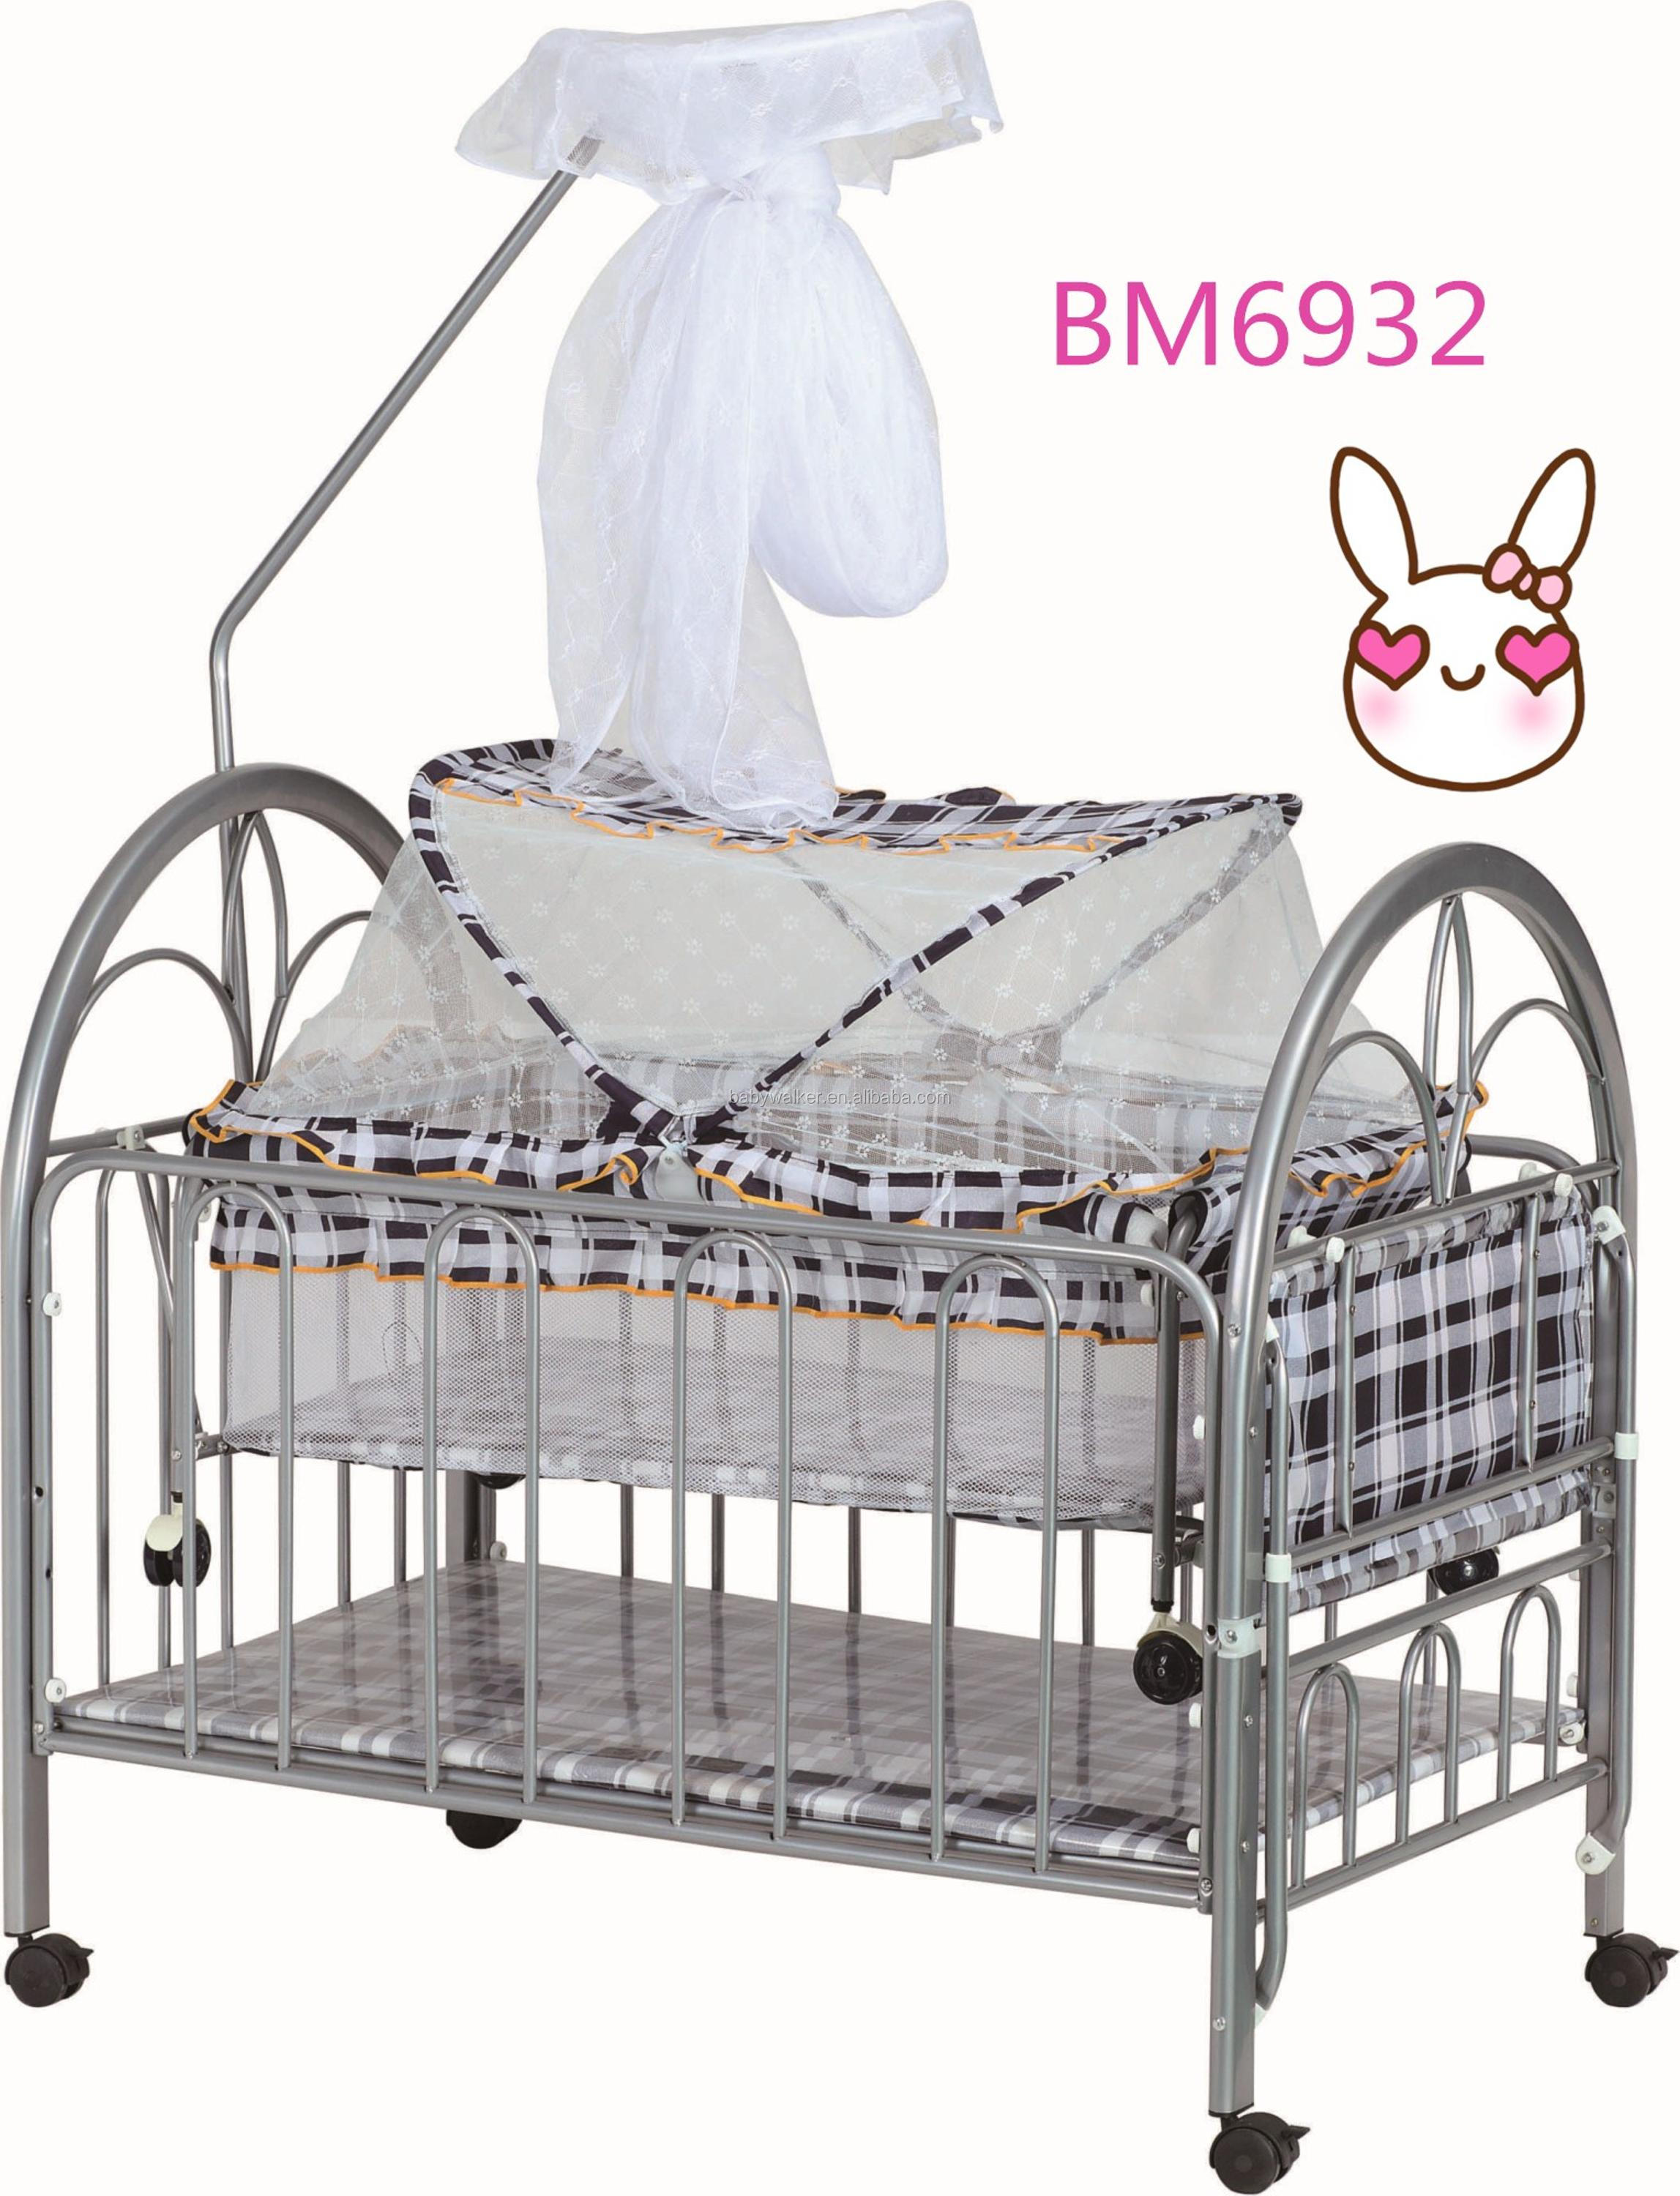 Hot Sale Baby Crib,Cot,Baby Bed Bm6a722/6b722